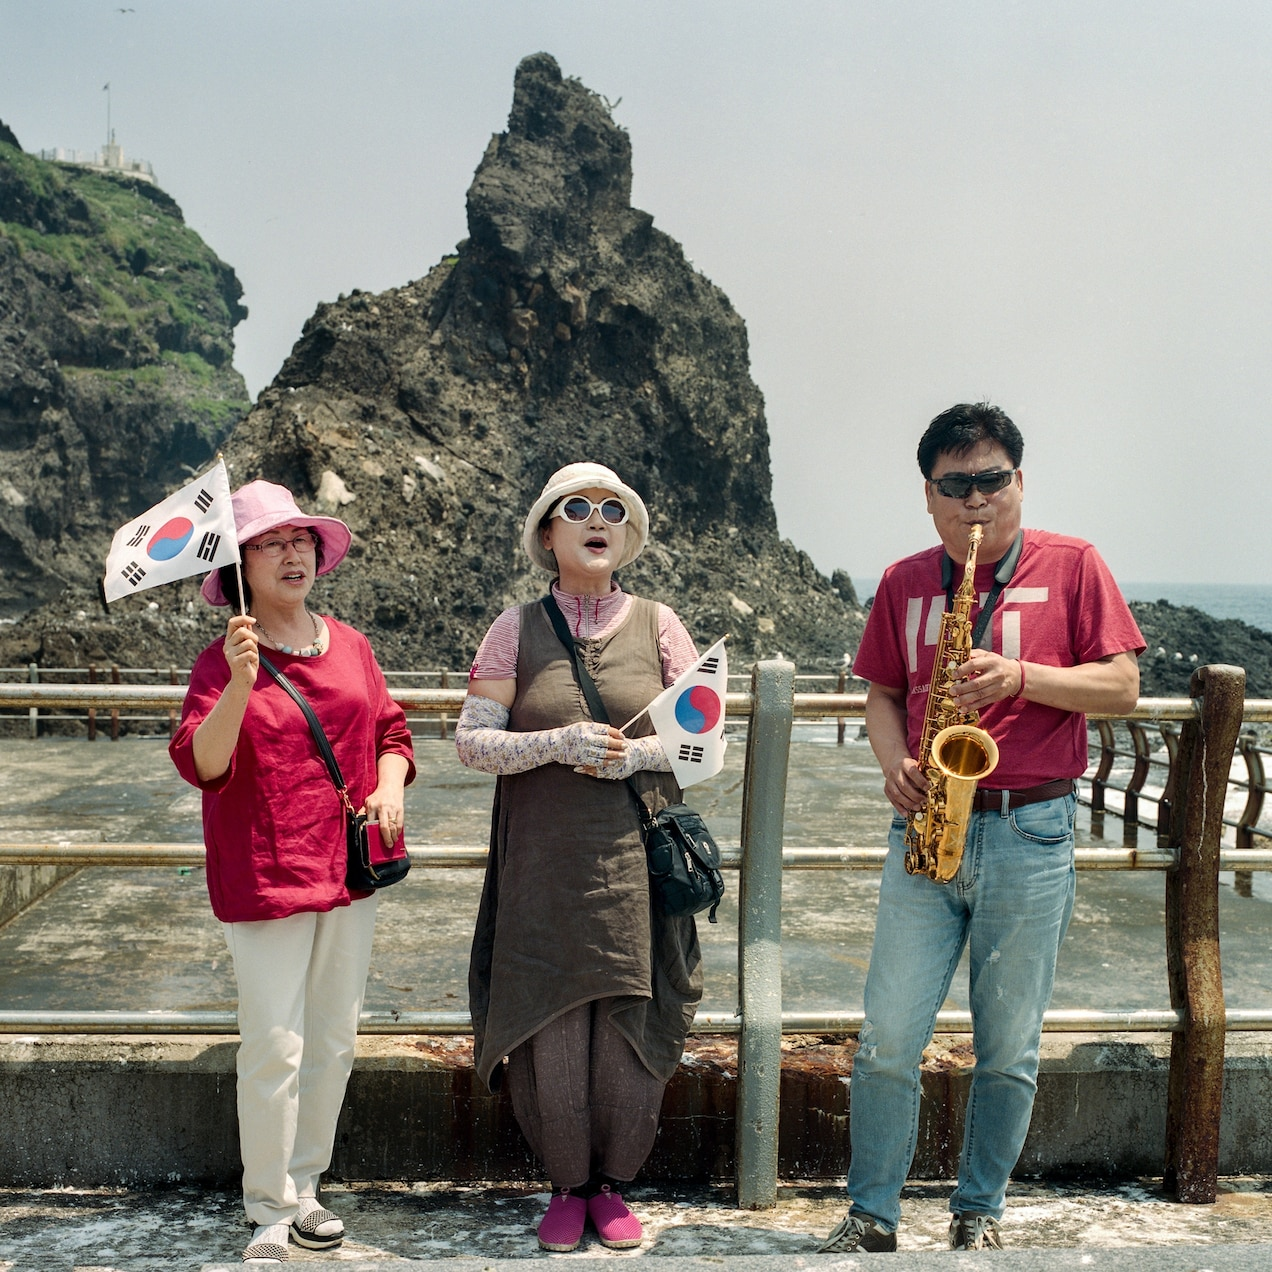 Dokdo tourists serenade the landscape with patriotic songs.